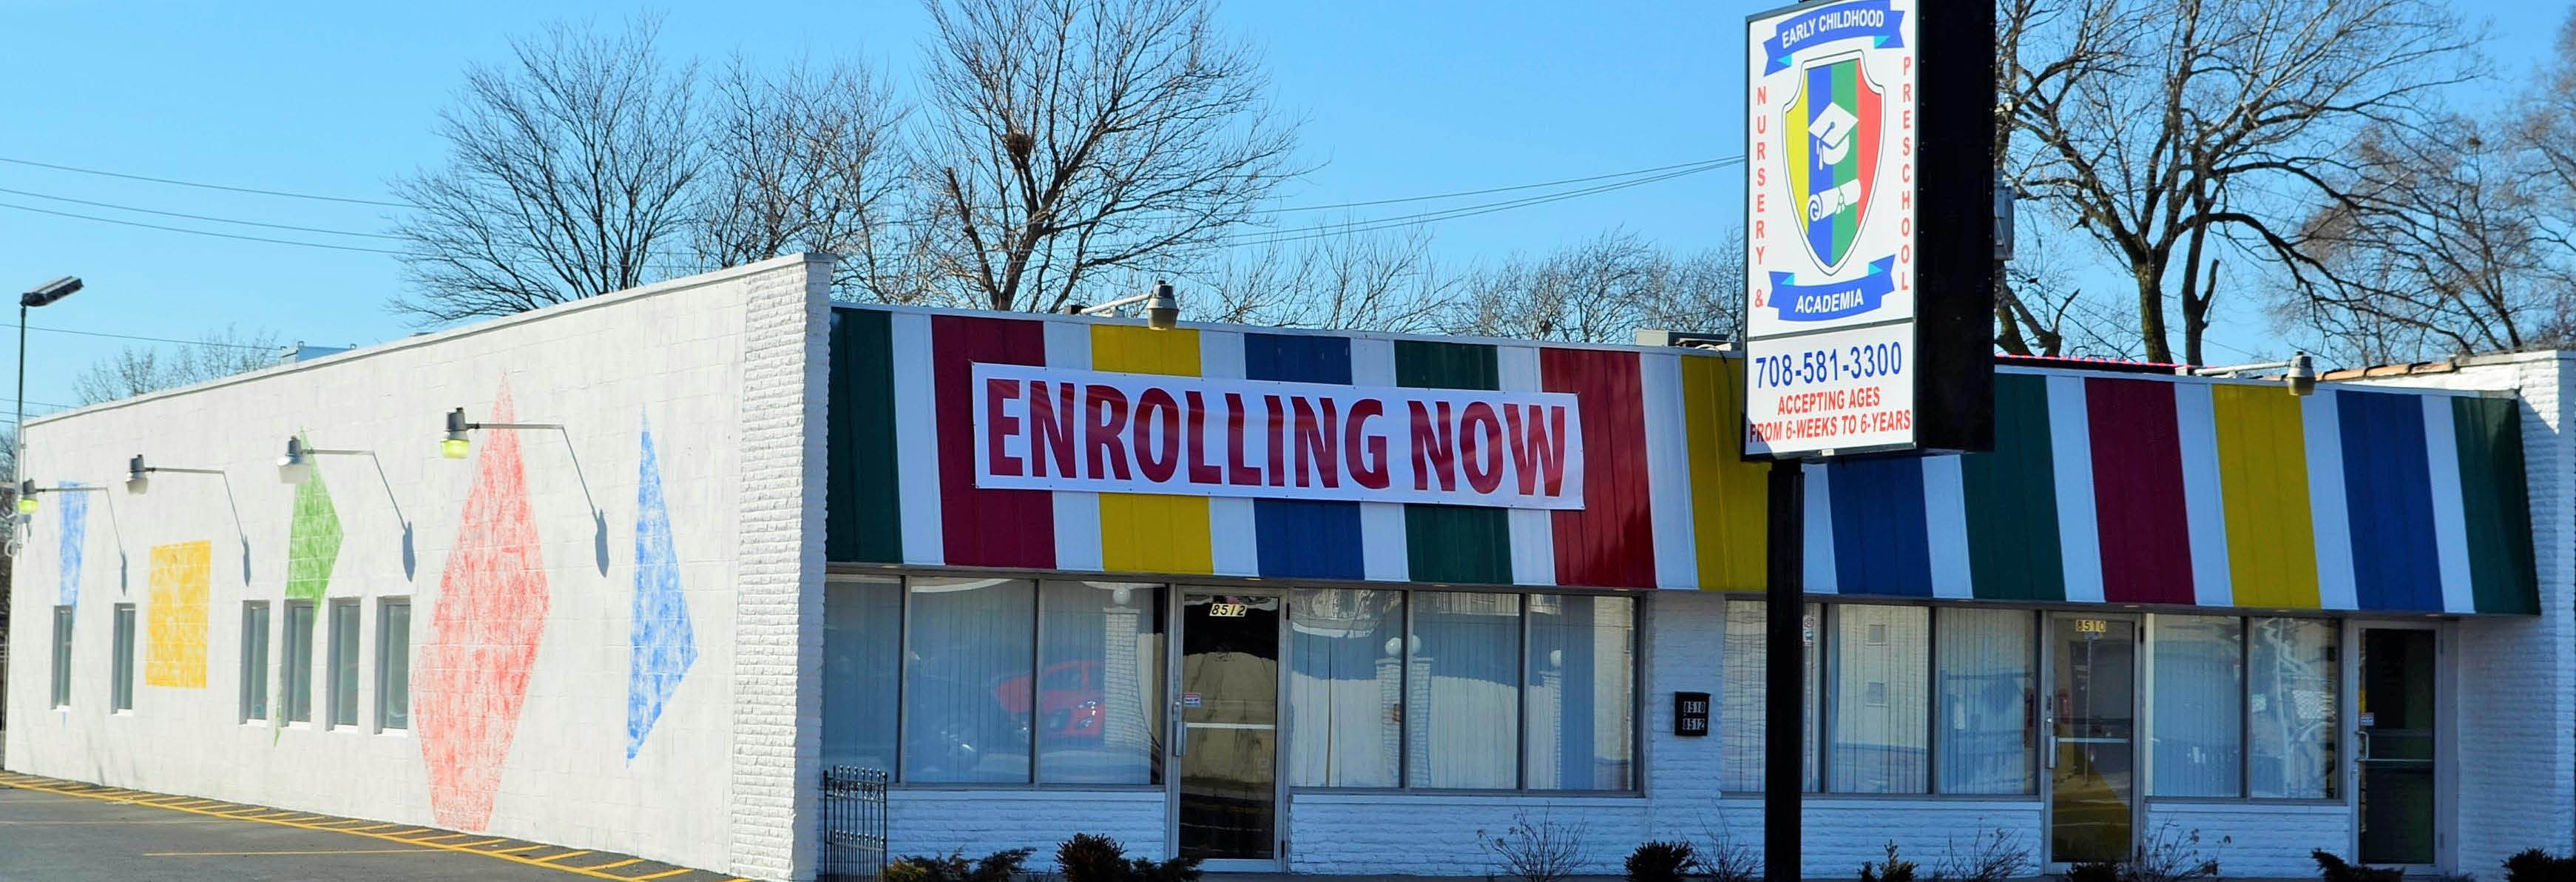 Visit our campus in Burbank, IL Early Childhood Academia.